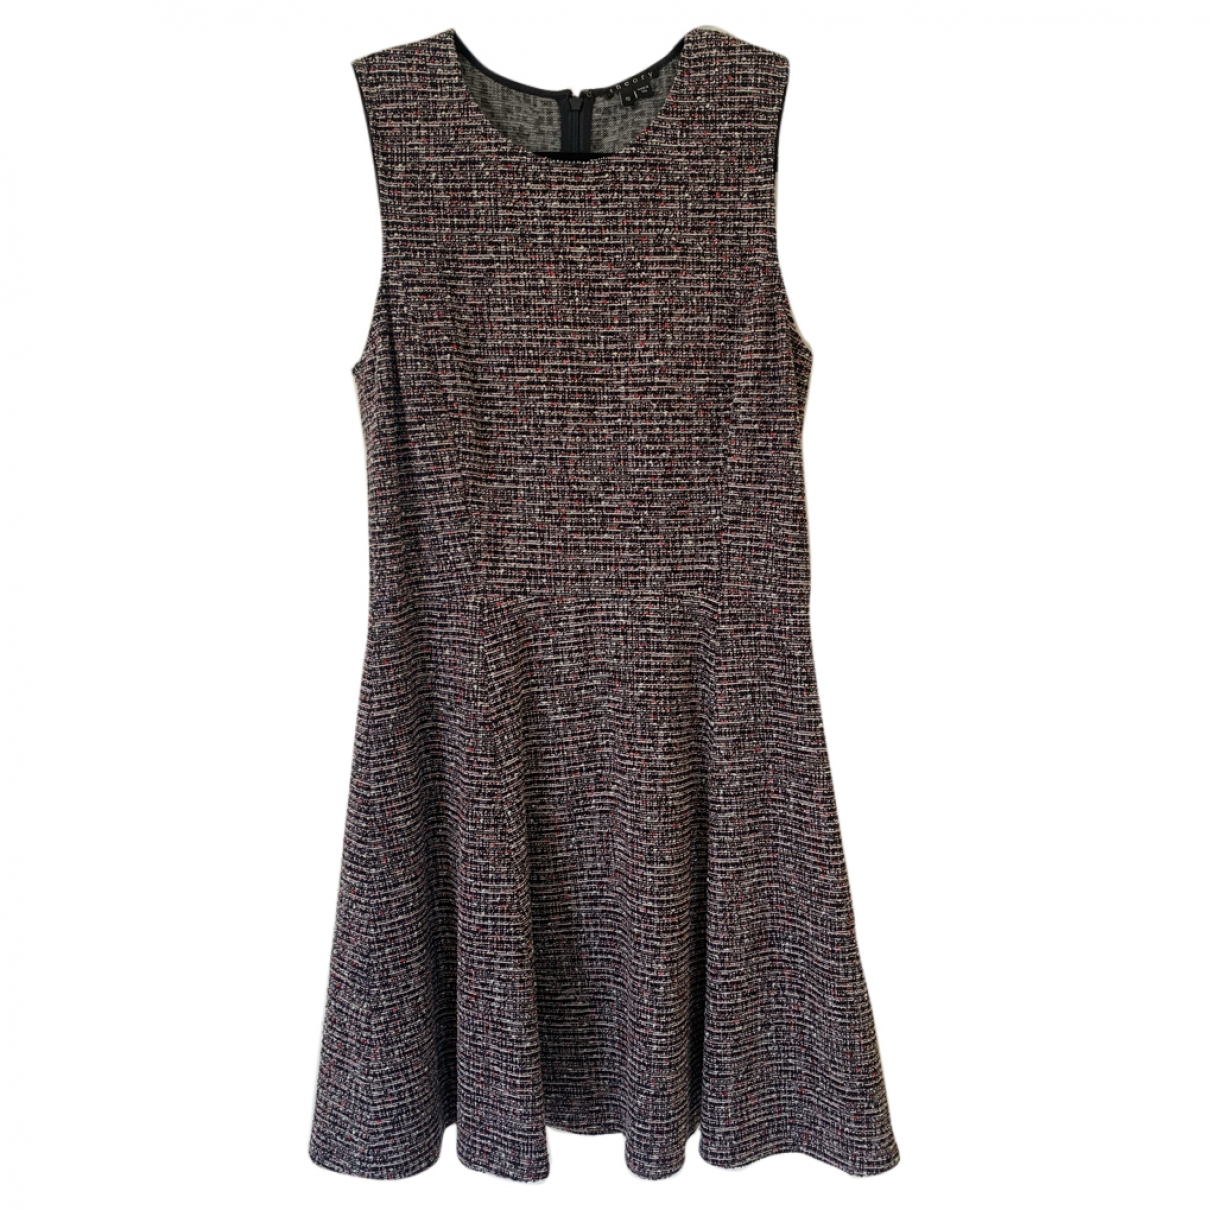 Theory - Robe   pour femme en tweed - multicolore